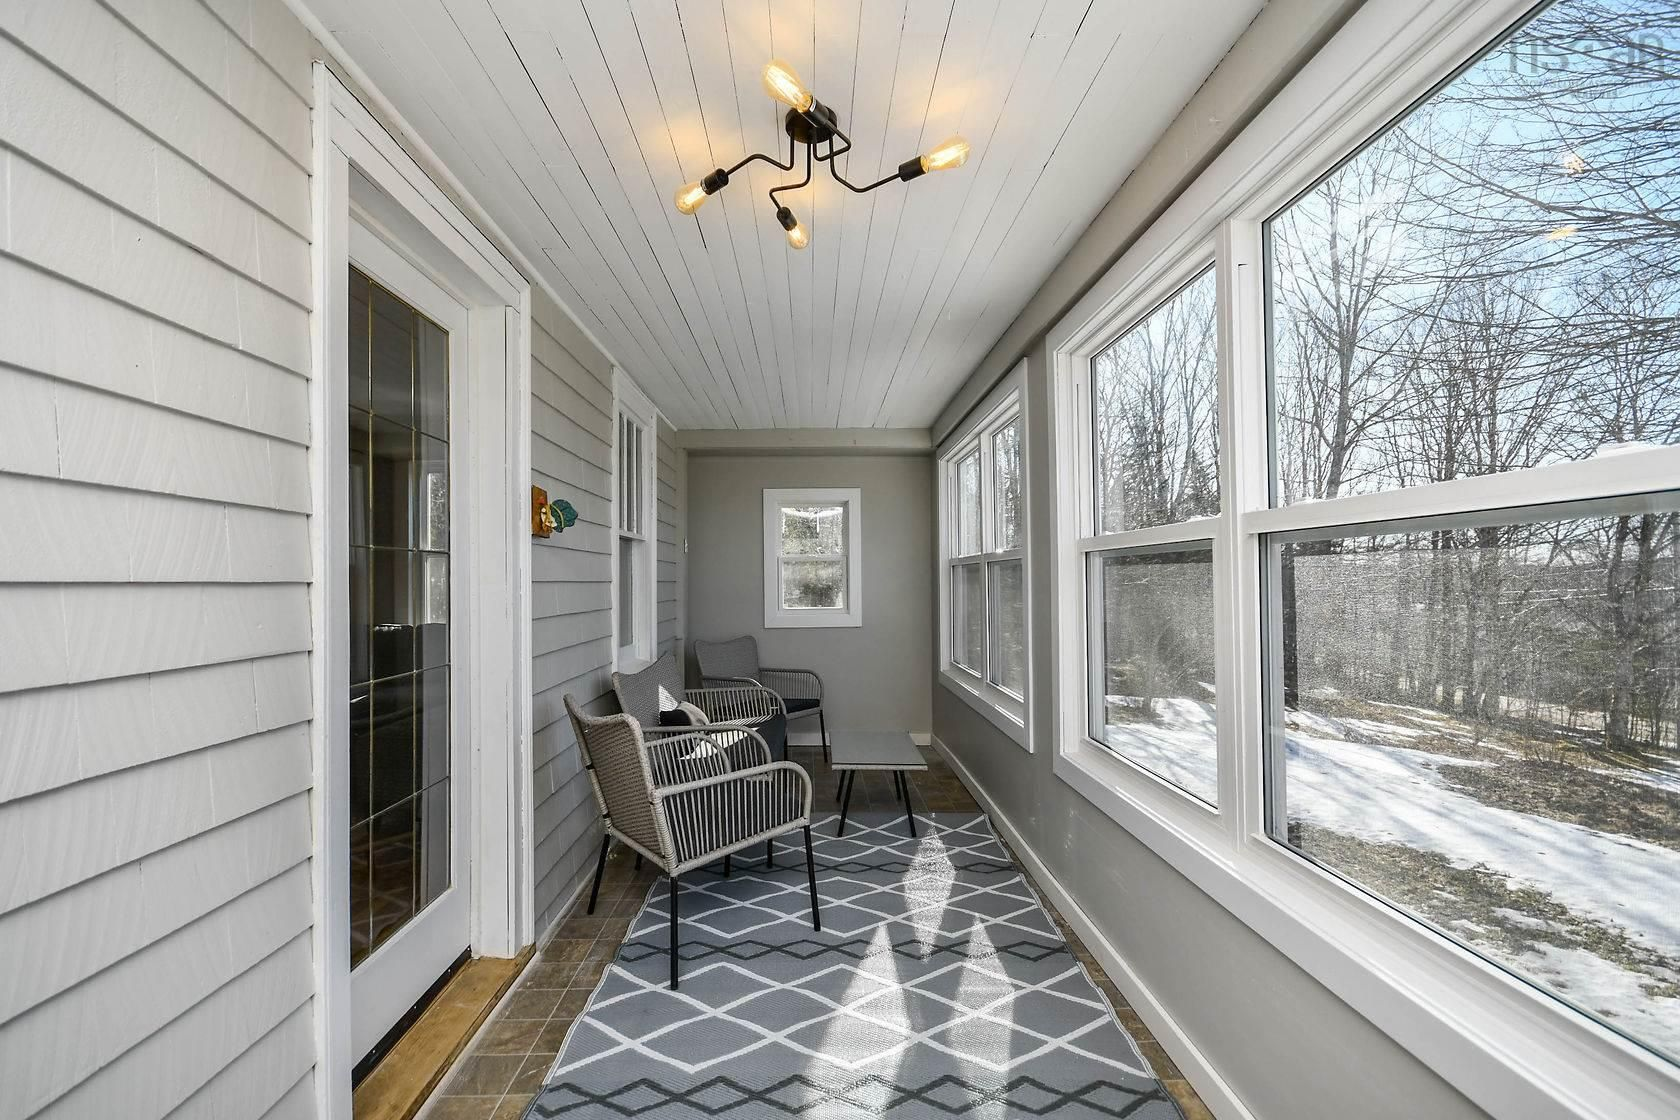 Photo 18: Photos: 284 East River Road in Sheet Harbour: 35-Halifax County East Residential for sale (Halifax-Dartmouth)  : MLS®# 202120104